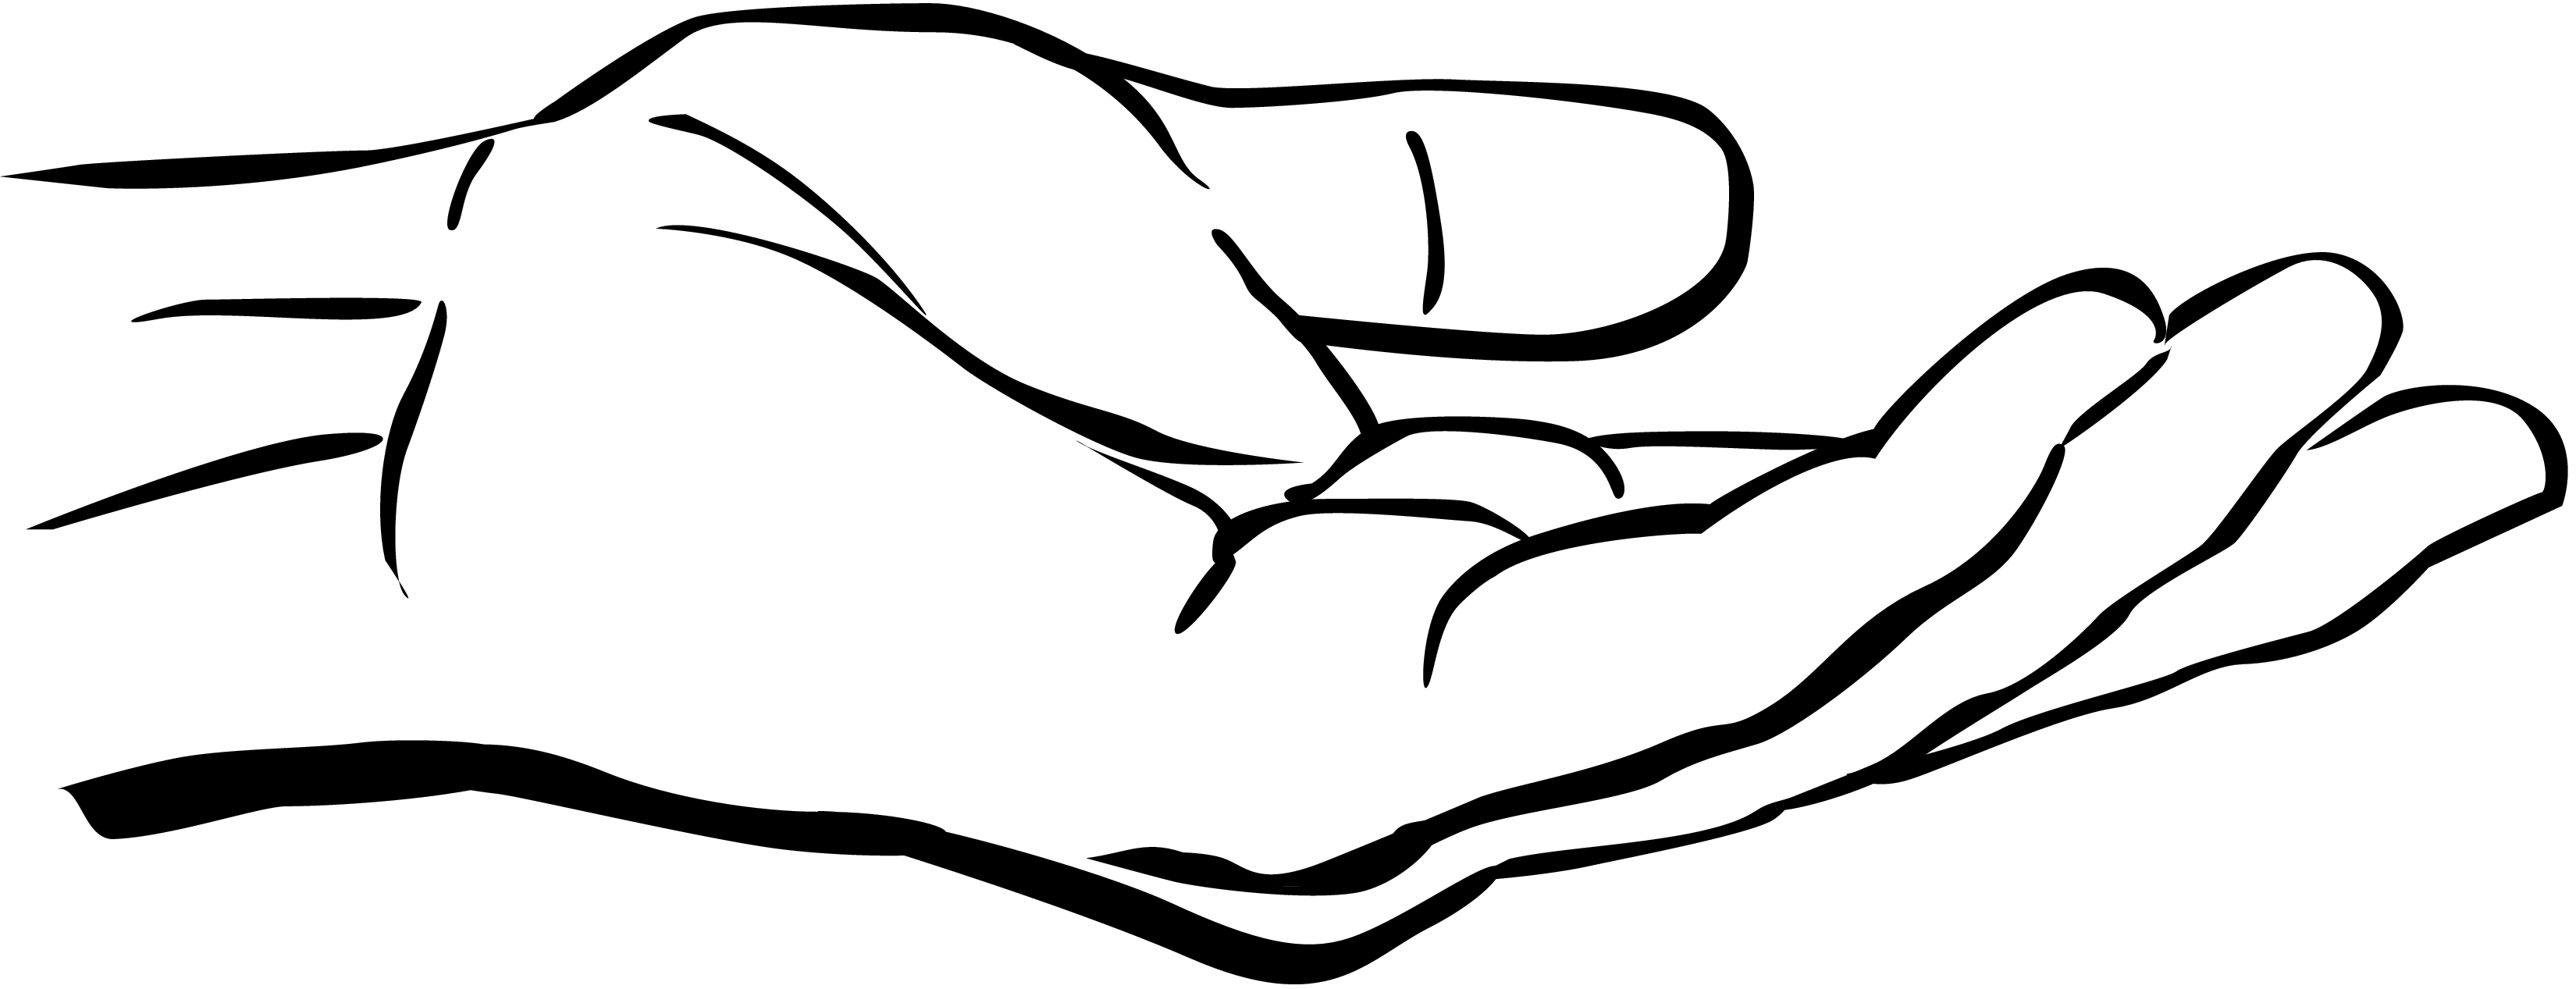 Clipart hand in hand picture black and white library Two men walking hand in hand clipart - ClipartFest picture black and white library